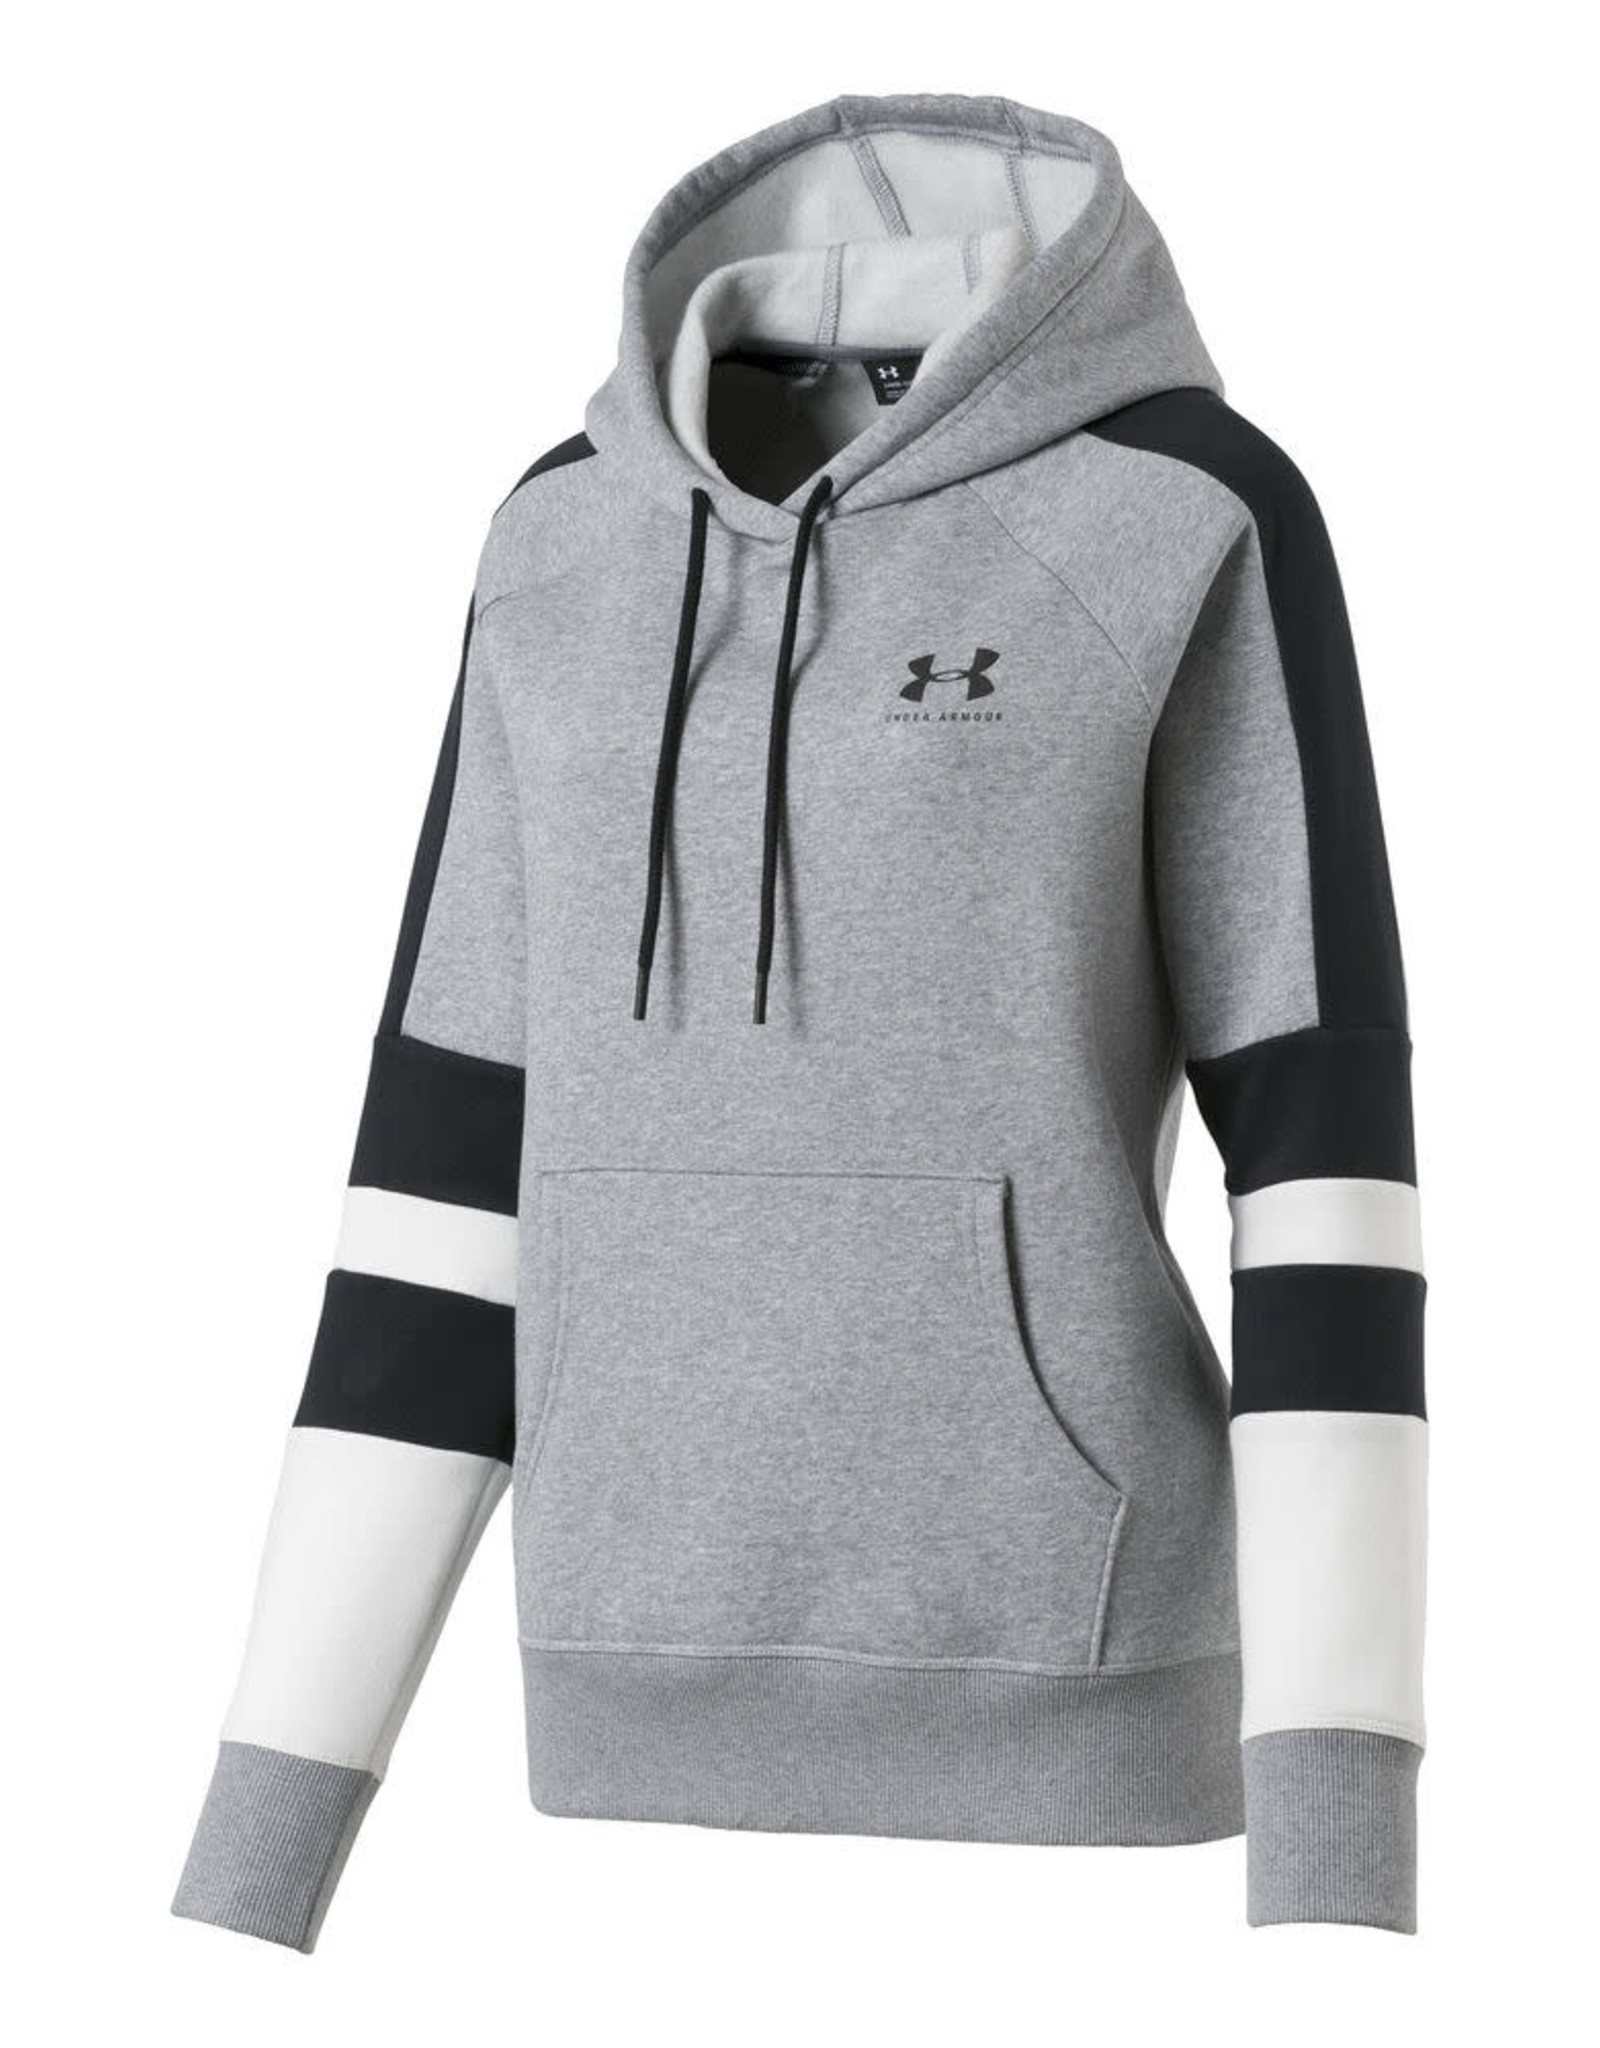 Under Armour Rival Fleece LC Logo Hoodie Novelty-GRY-SM